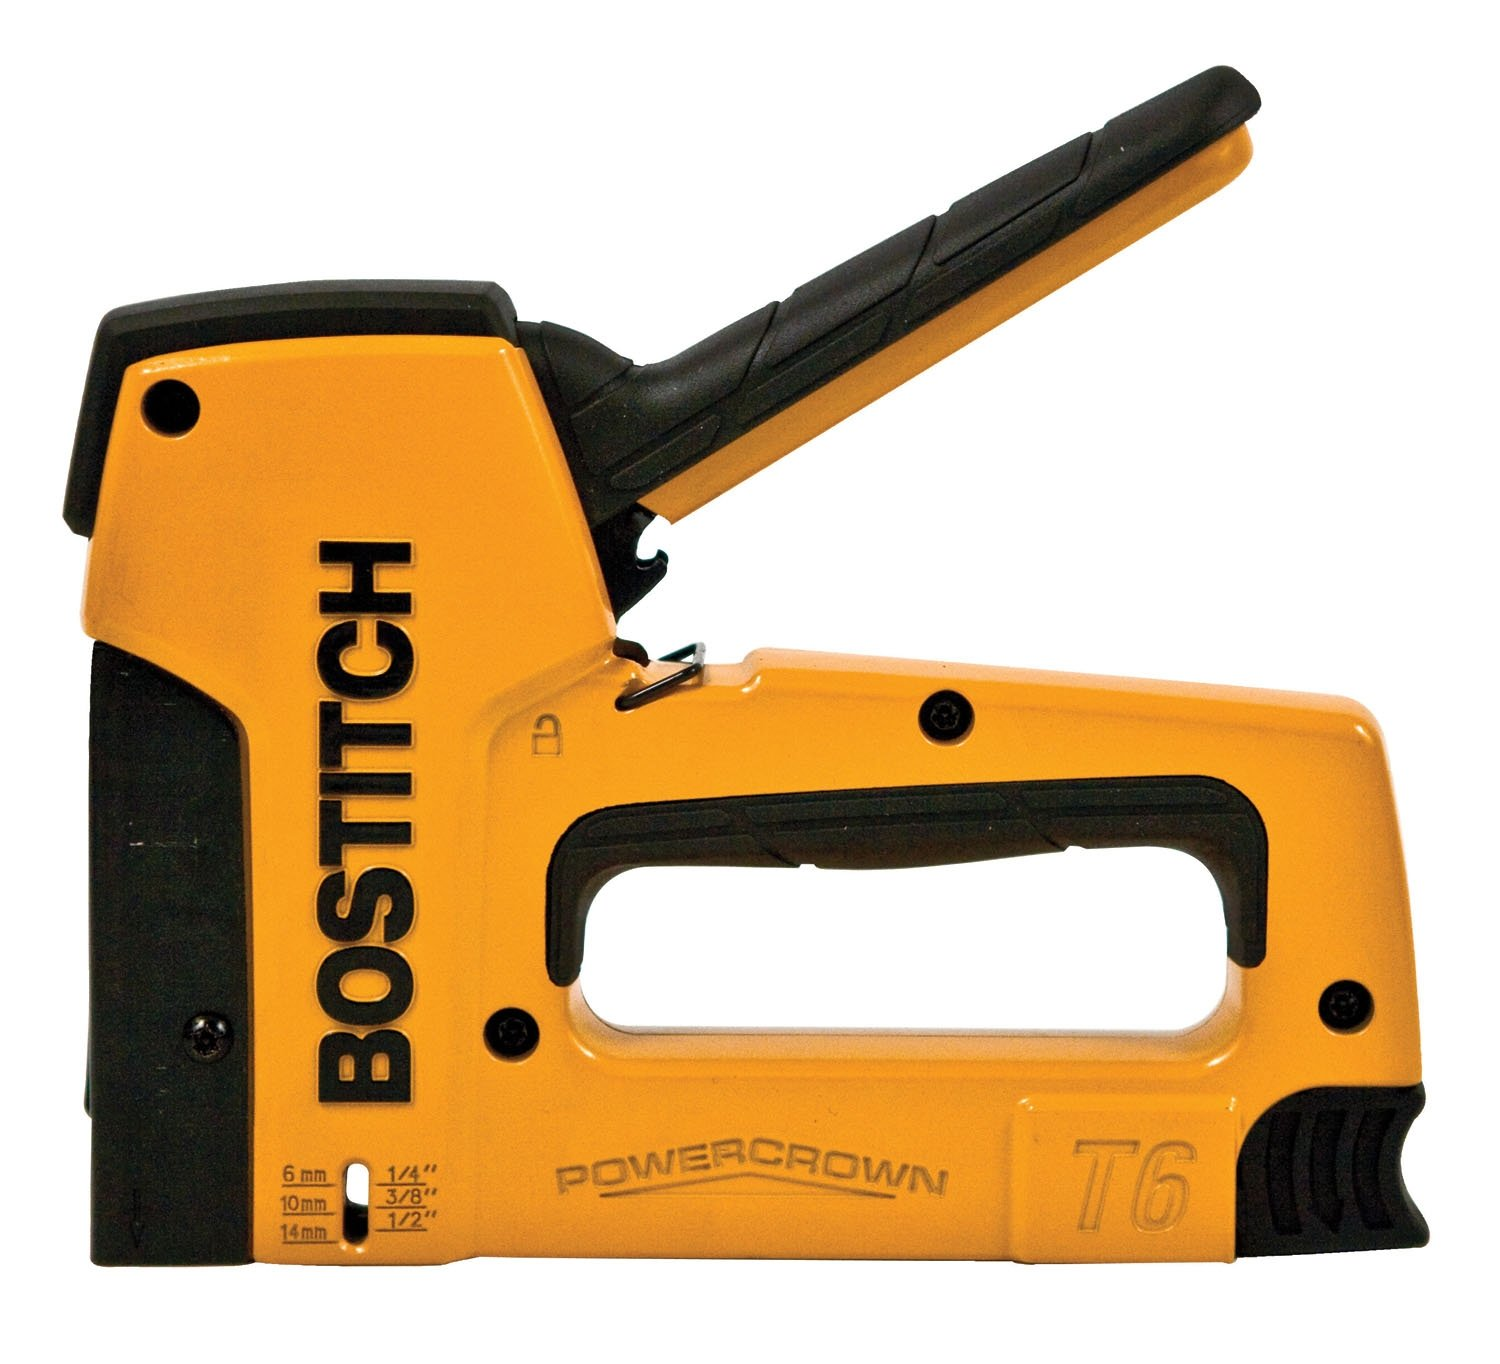 Bostitch T6-8OC2 Outward Clinch Stapler, Manual, Heavy Duty by BOSTITCH (Image #1)